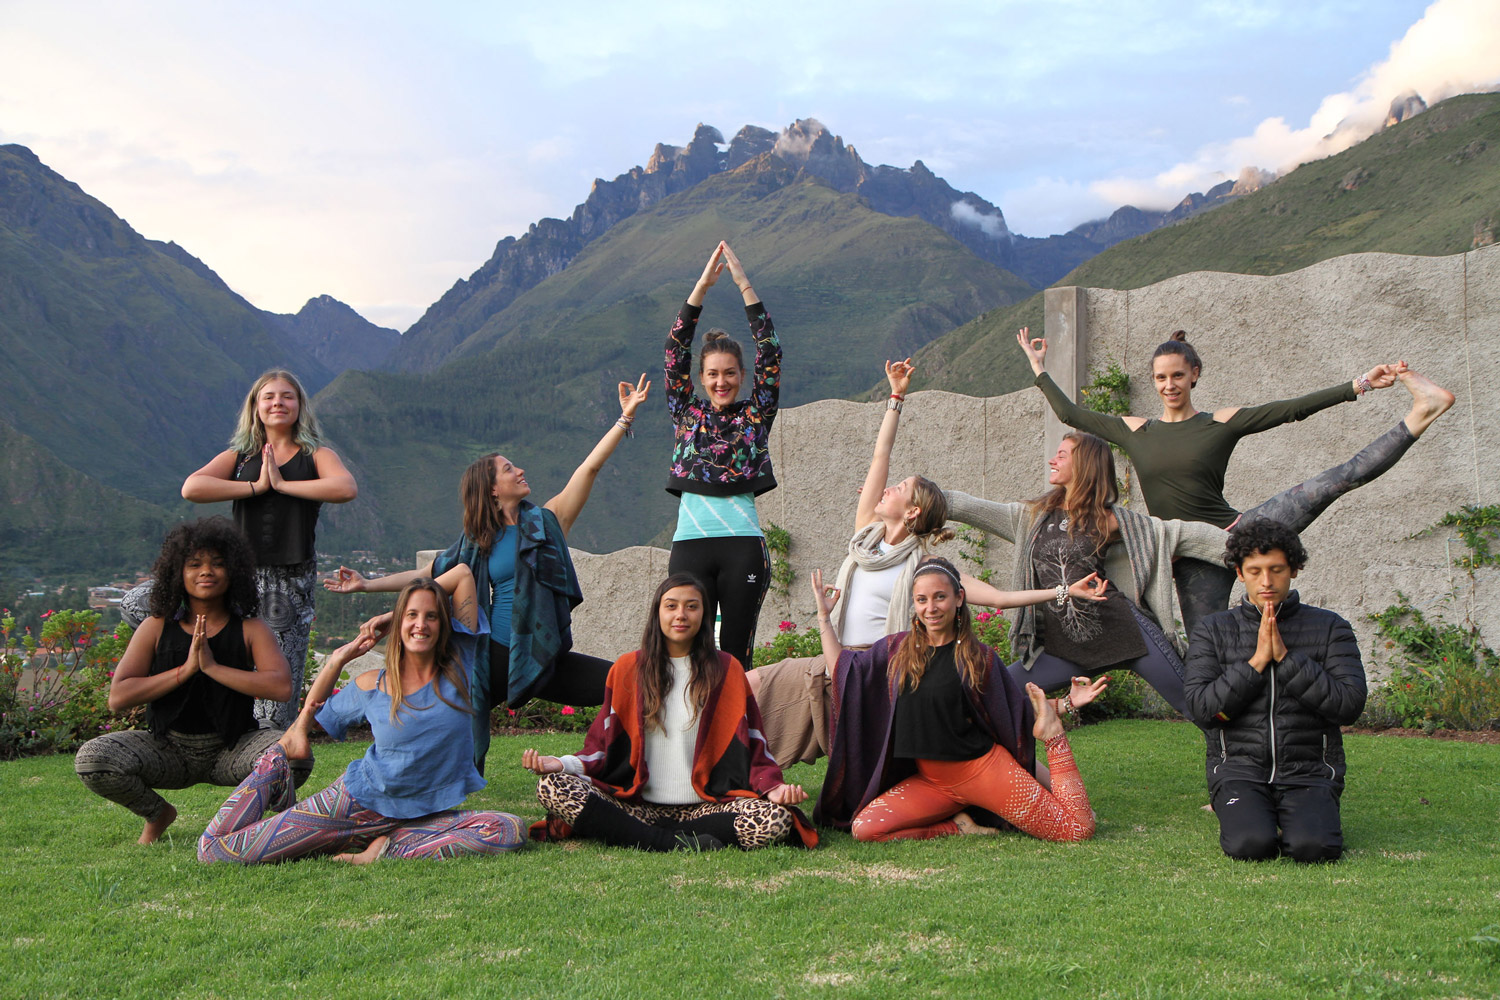 durga-peru-group-yin-yoga-teacher-trianing.jpg